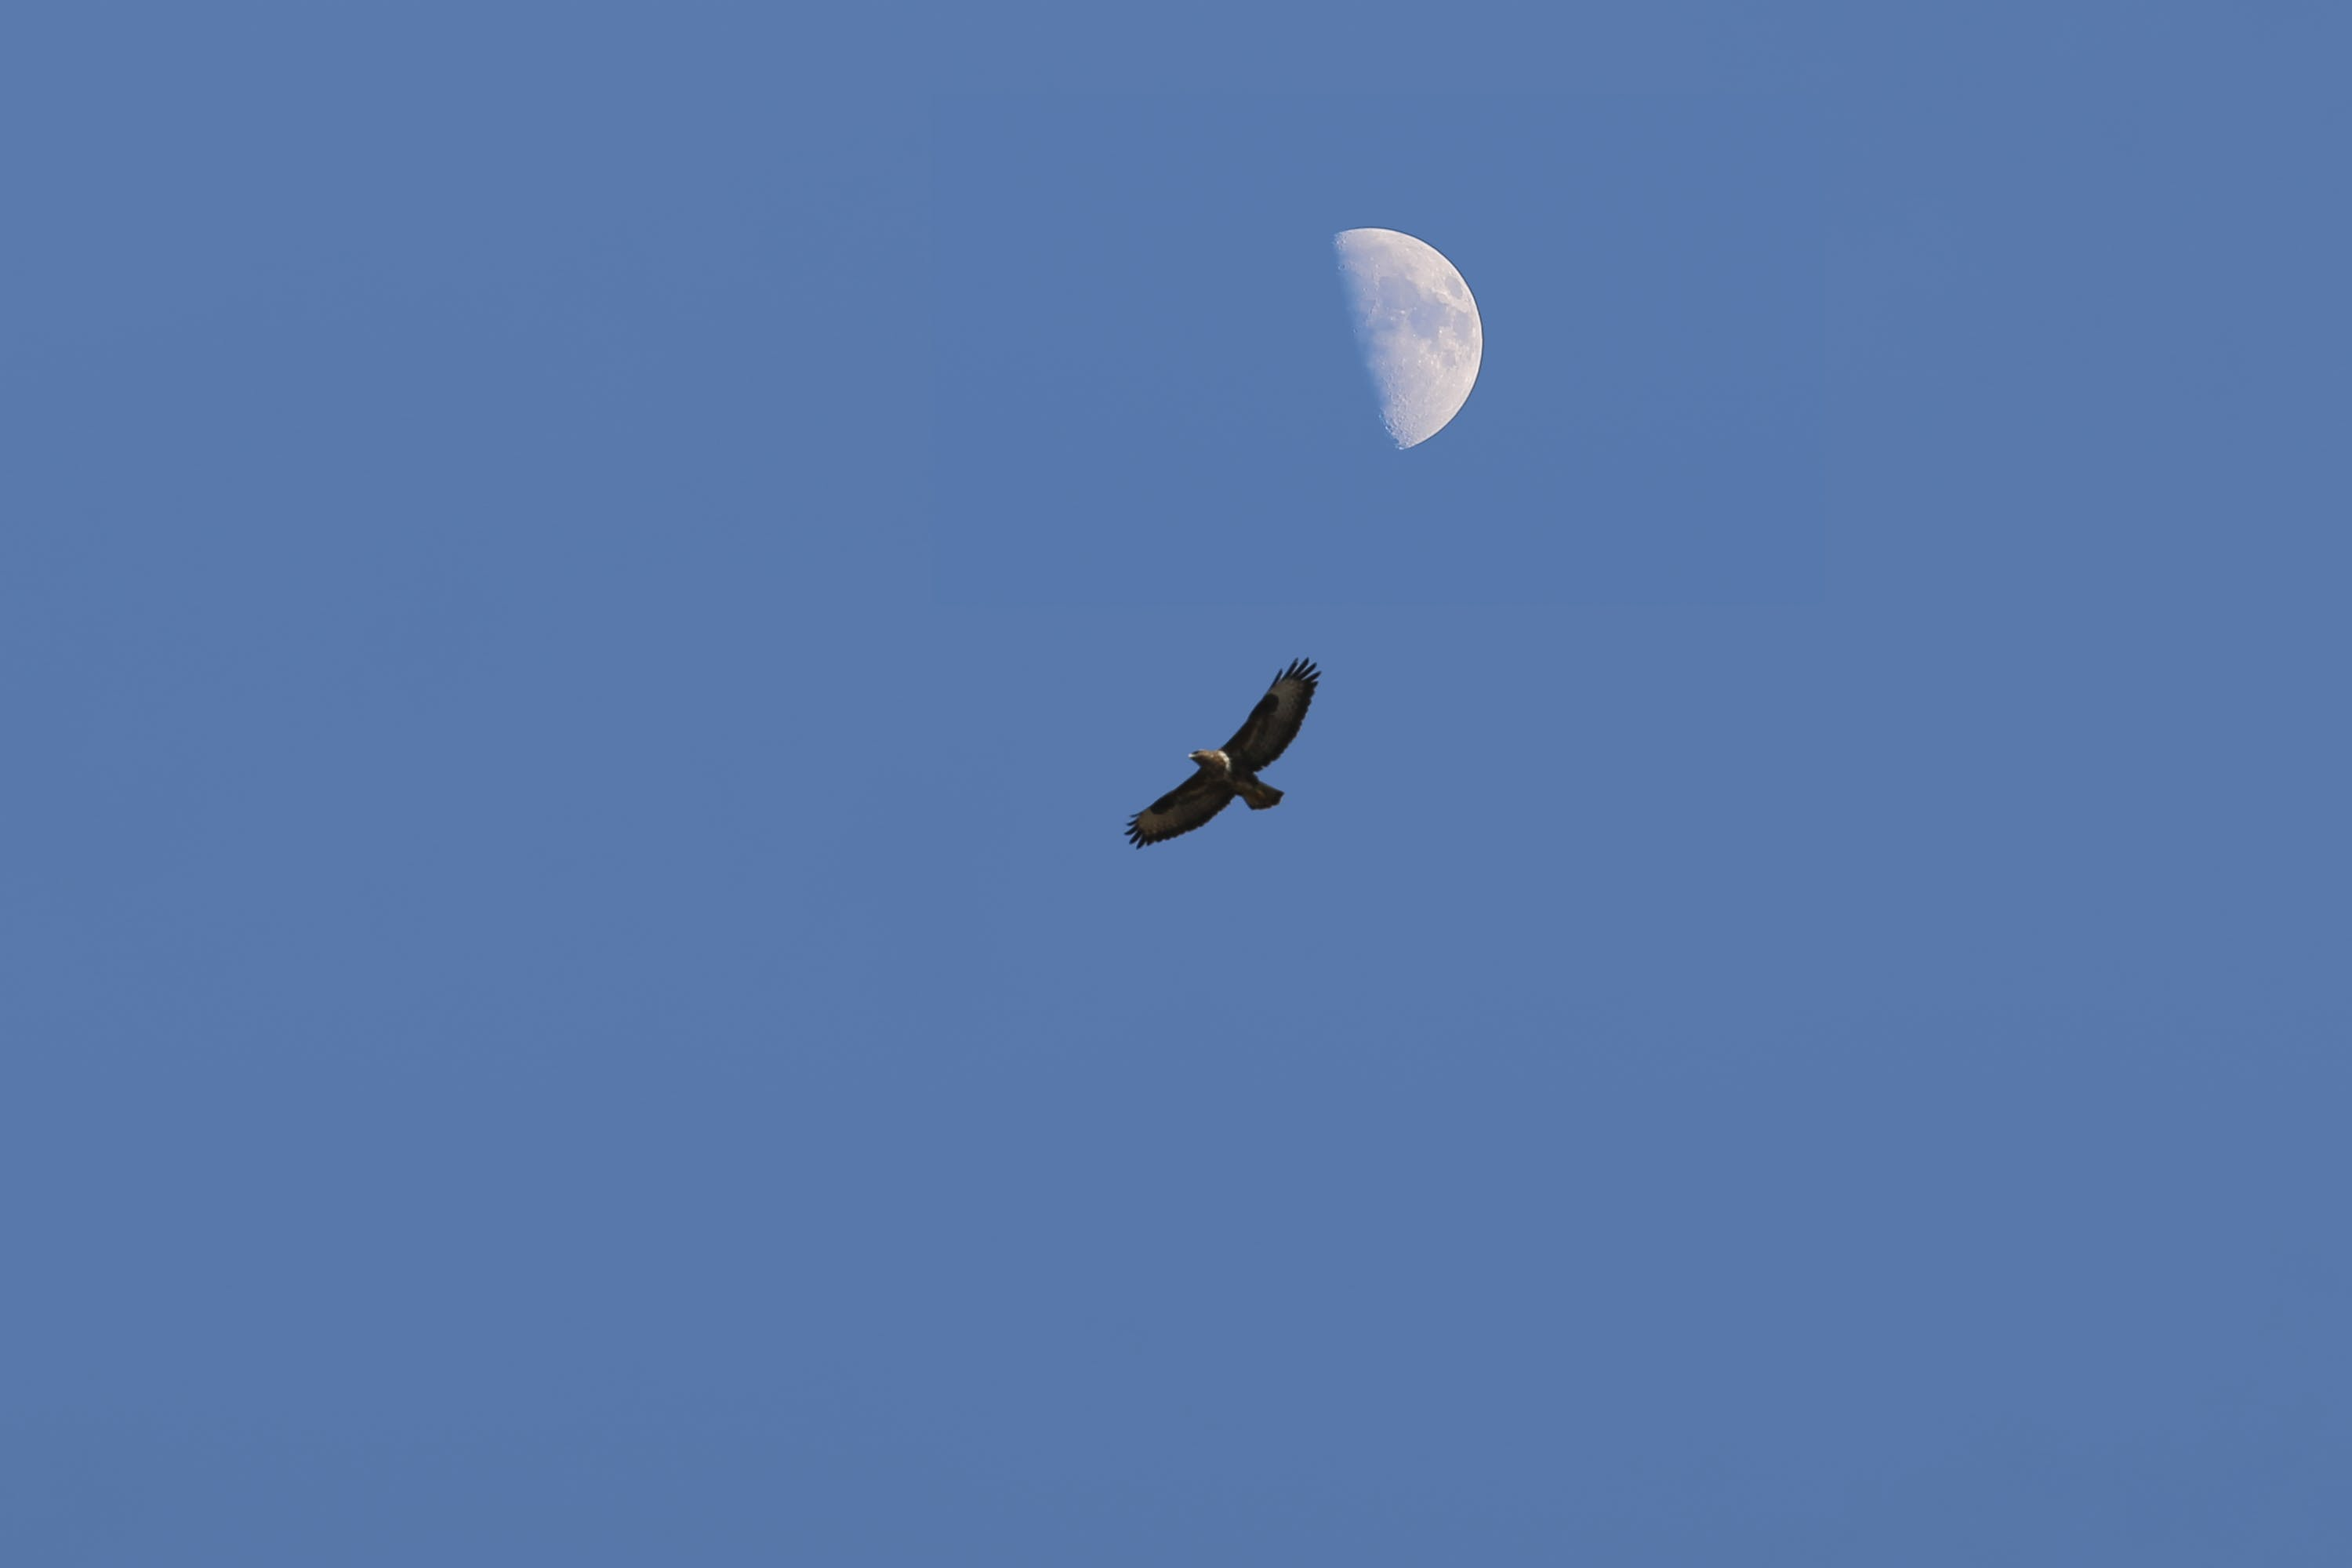 Free stock photo of eagle, half moon